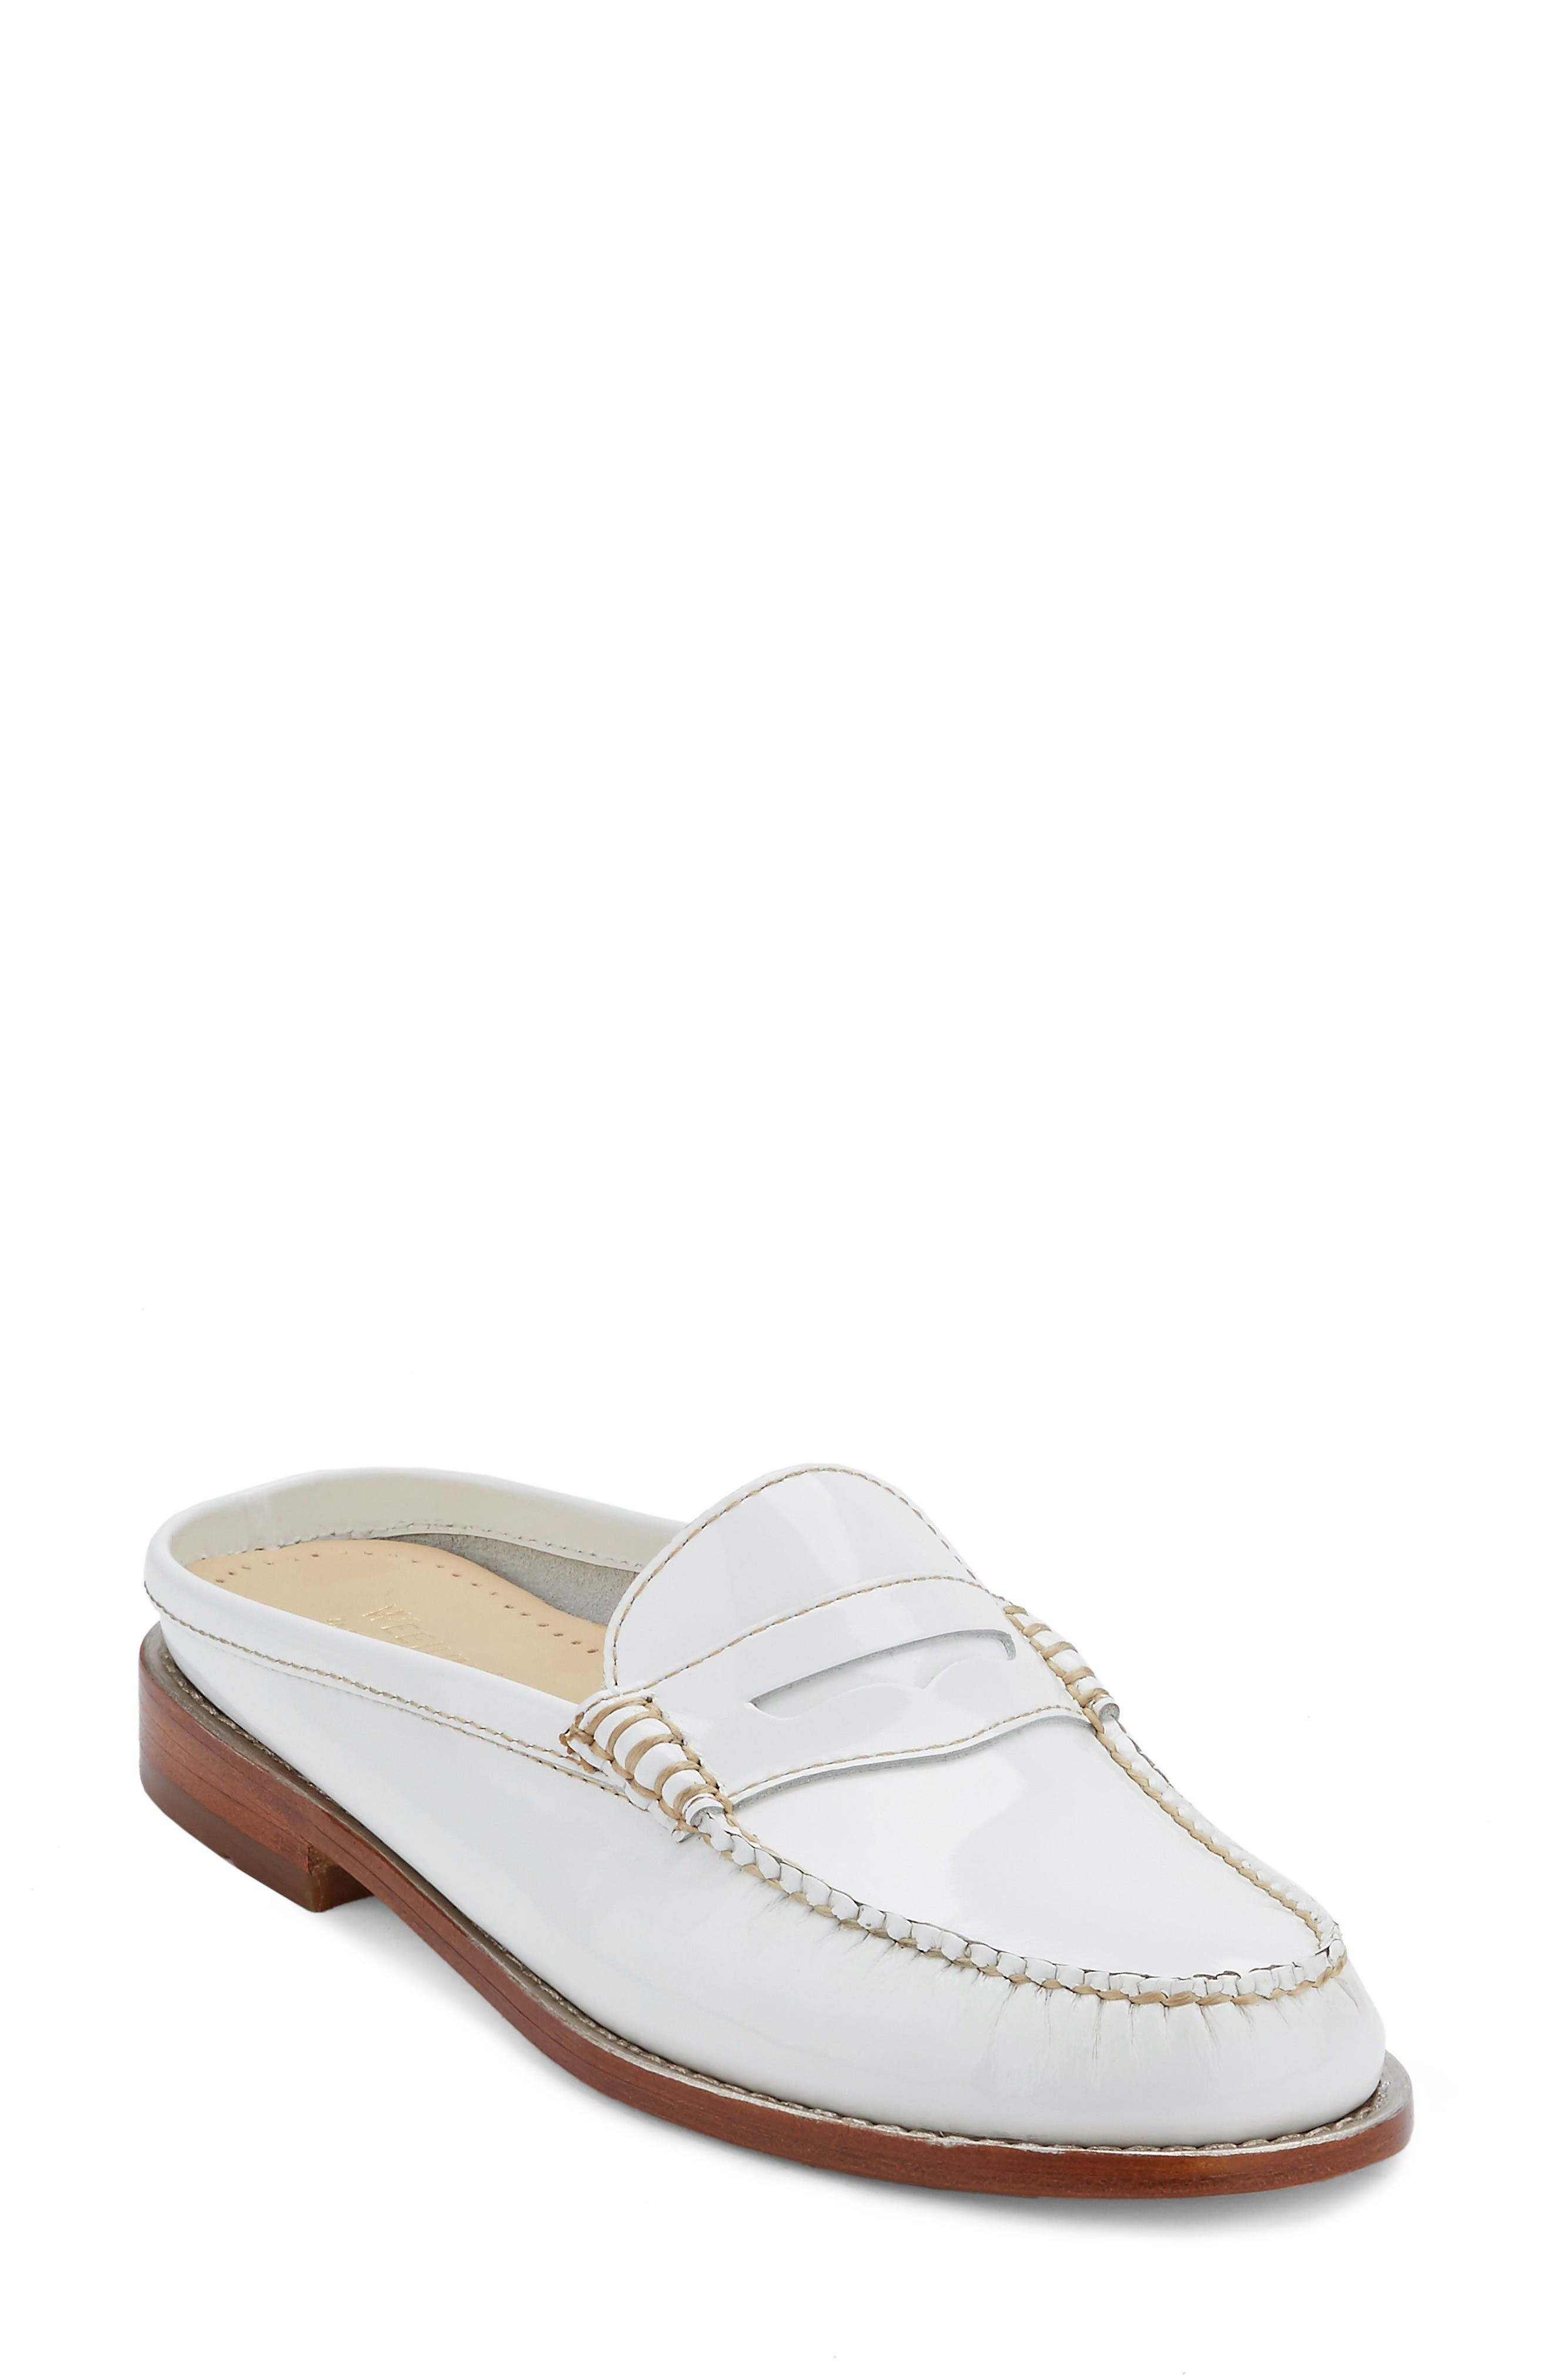 Wynn Loafer Mule,                         Main,                         color, White Leather